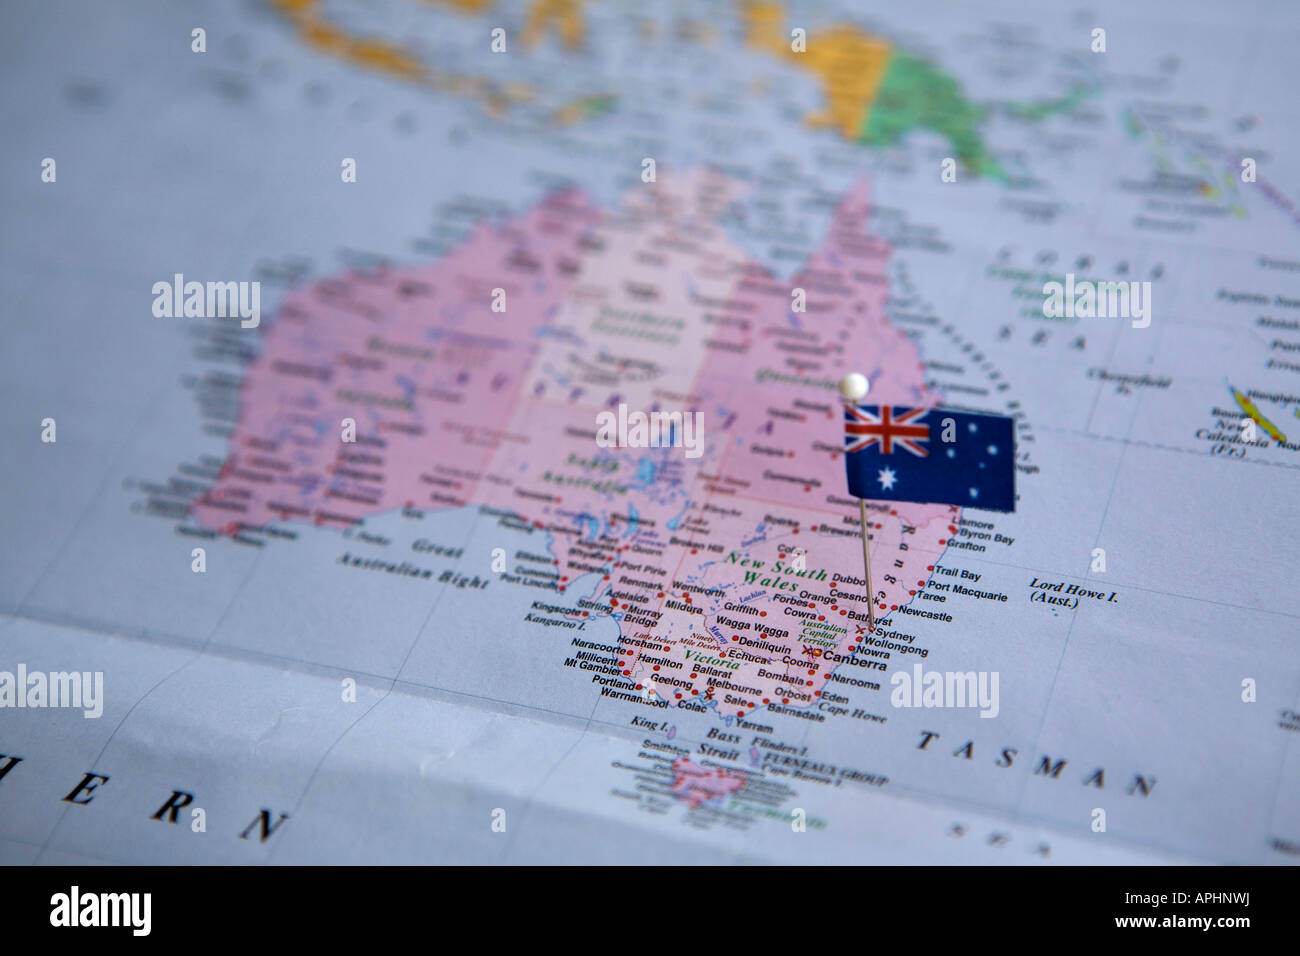 Sydney Australia World Map.Flag Pin Placed On World Map In Sydney Australia Stock Photo